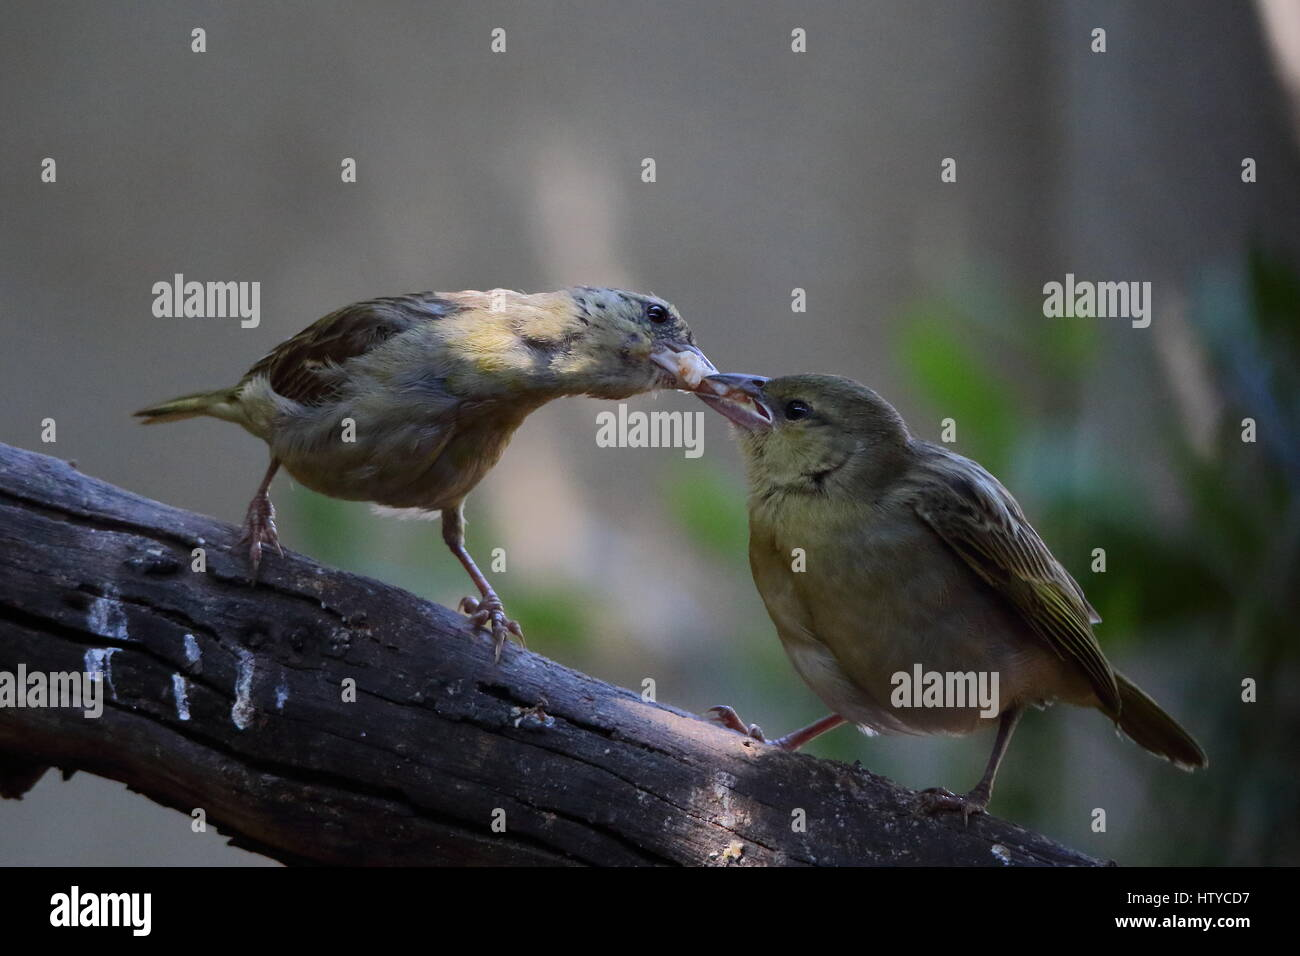 Motherhood - a female bird feeds its young image in landscape format with copy space - Stock Image